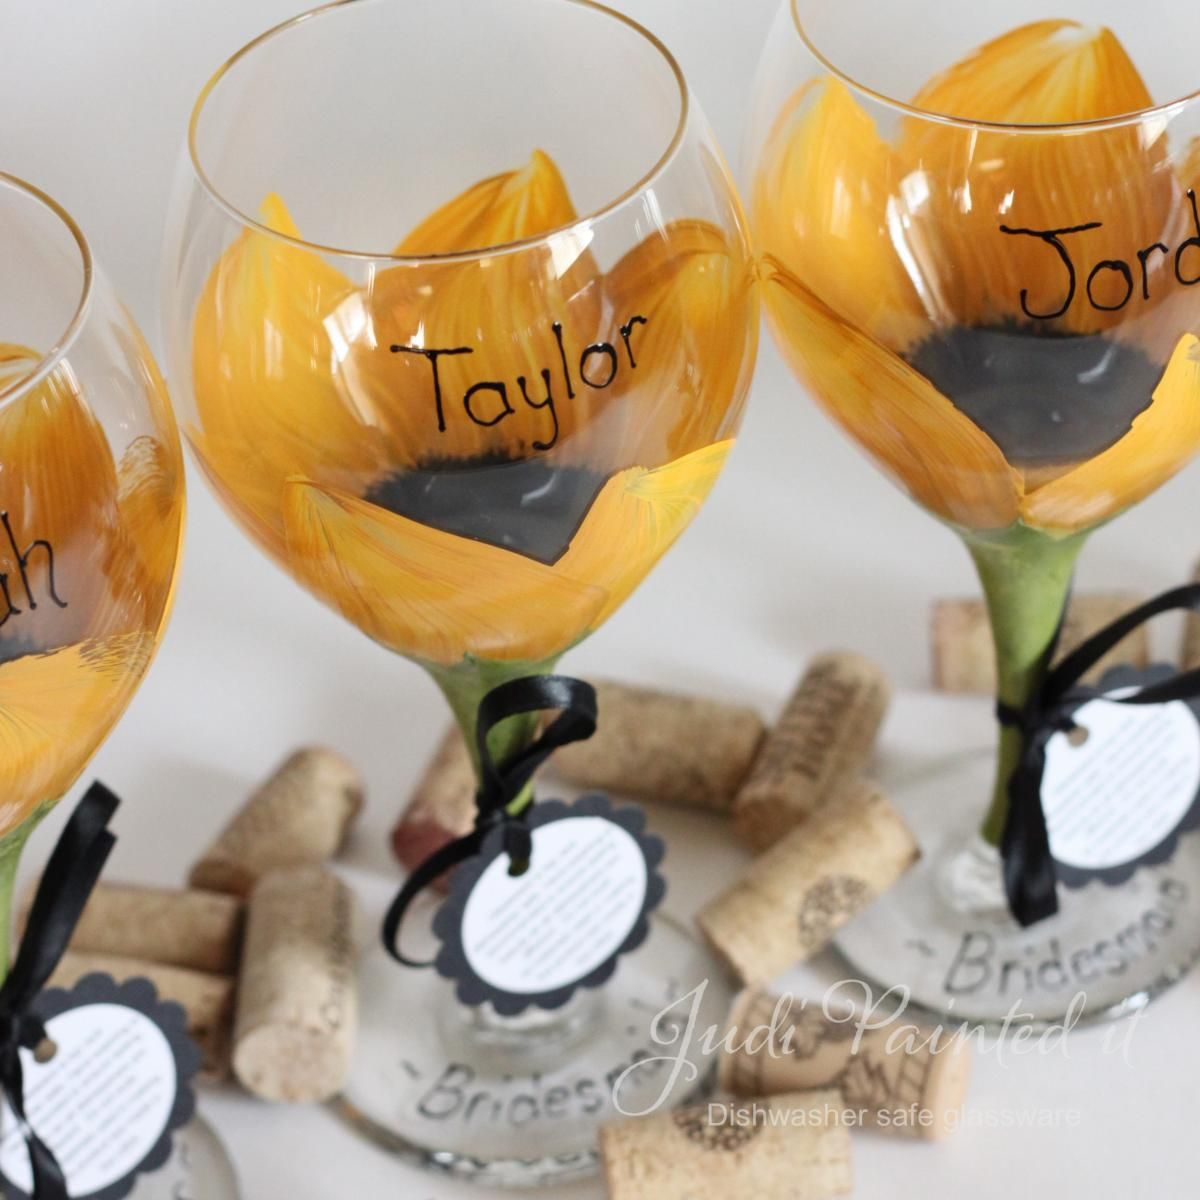 Hand Painted Wine Glasses Wholesale Sunflower Painted Wine Glass That Is Dishwasher Safe